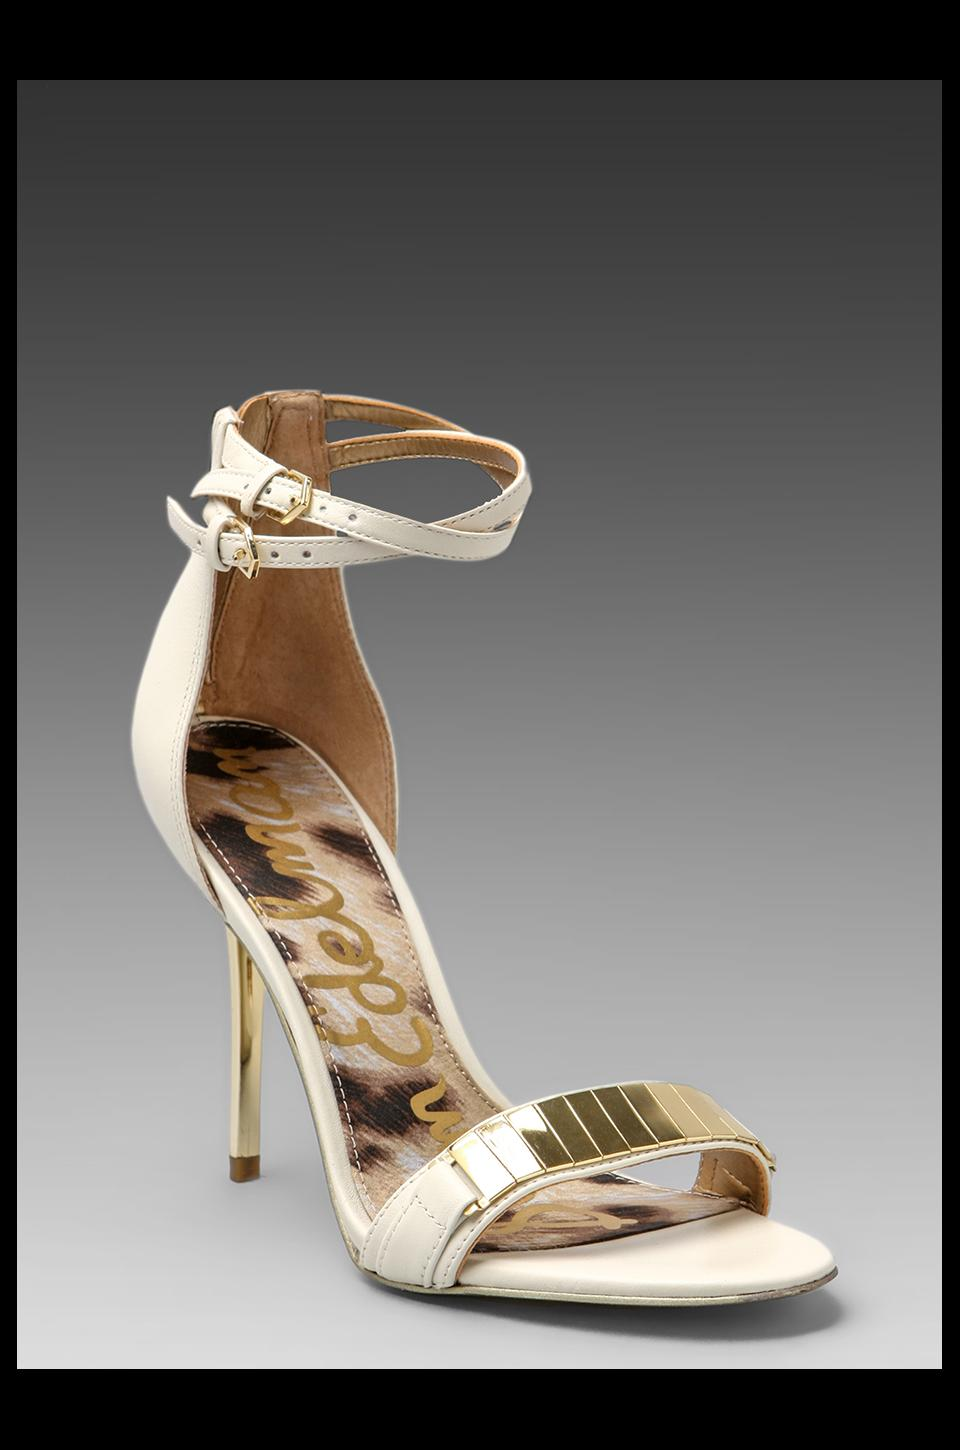 Sam Edelman Allie Heel in Ice White